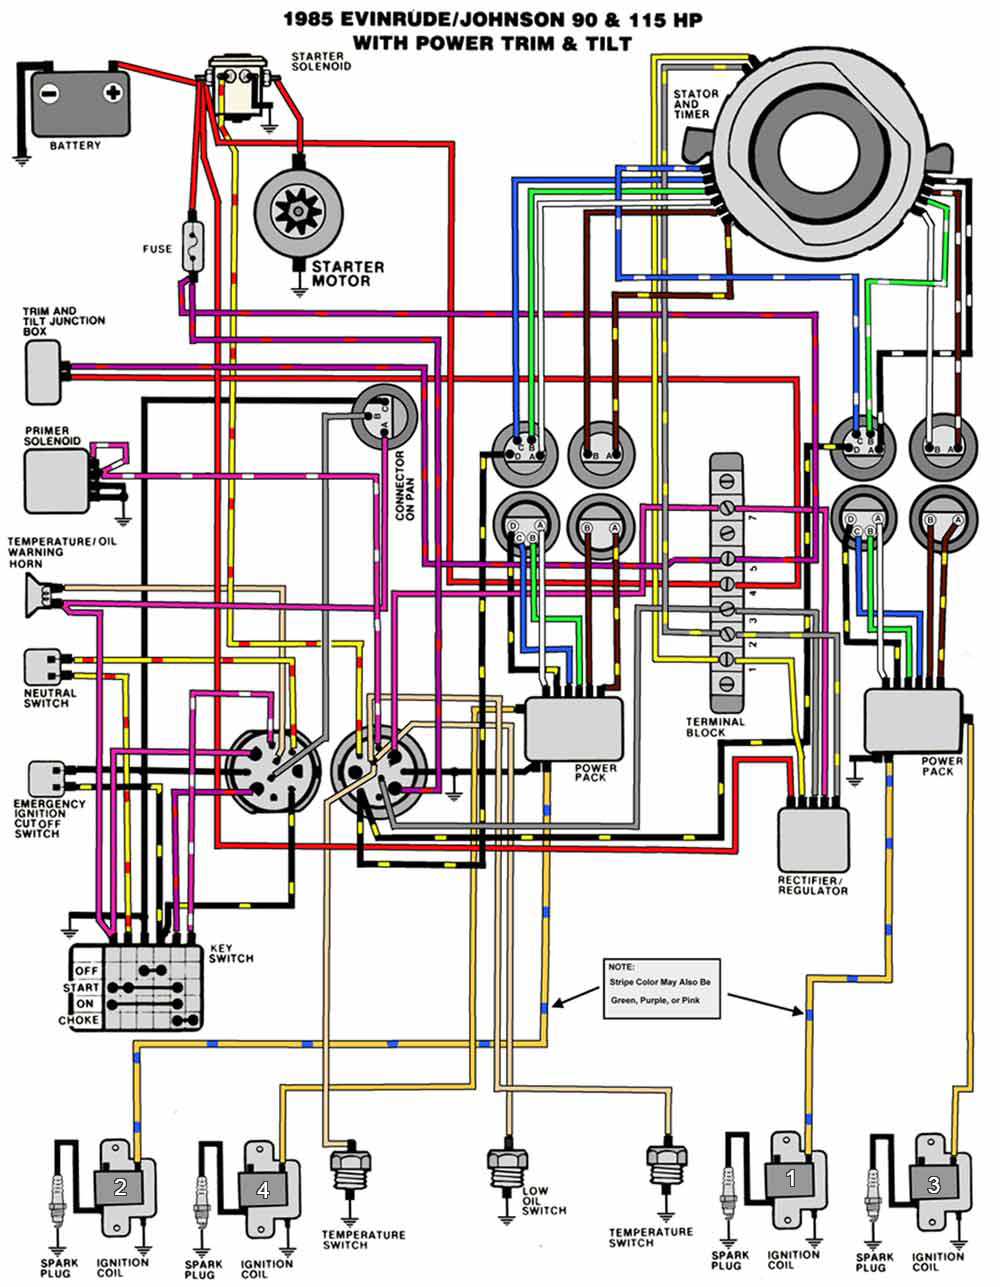 1985_90_115TnT mastertech marine evinrude johnson outboard wiring diagrams  at panicattacktreatment.co